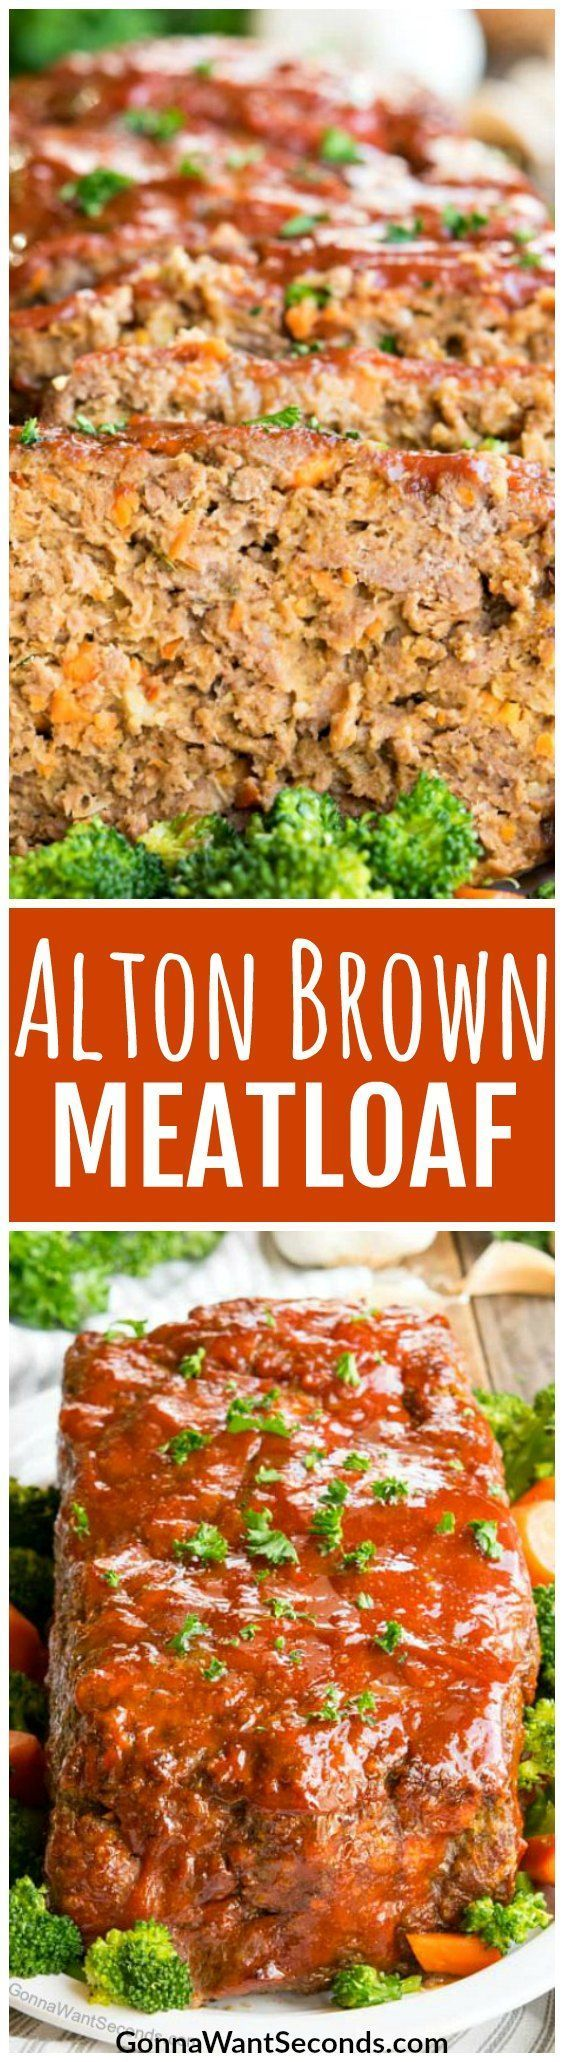 This classic recipe for Alton Brown Meatloaf comes out tender, moist and delicious every time. Its Easy and just maybe one of the Best Meatloaf Recipes out there! #Recipes #Easy #Crockpot #Classic #GroundBeef #Beef